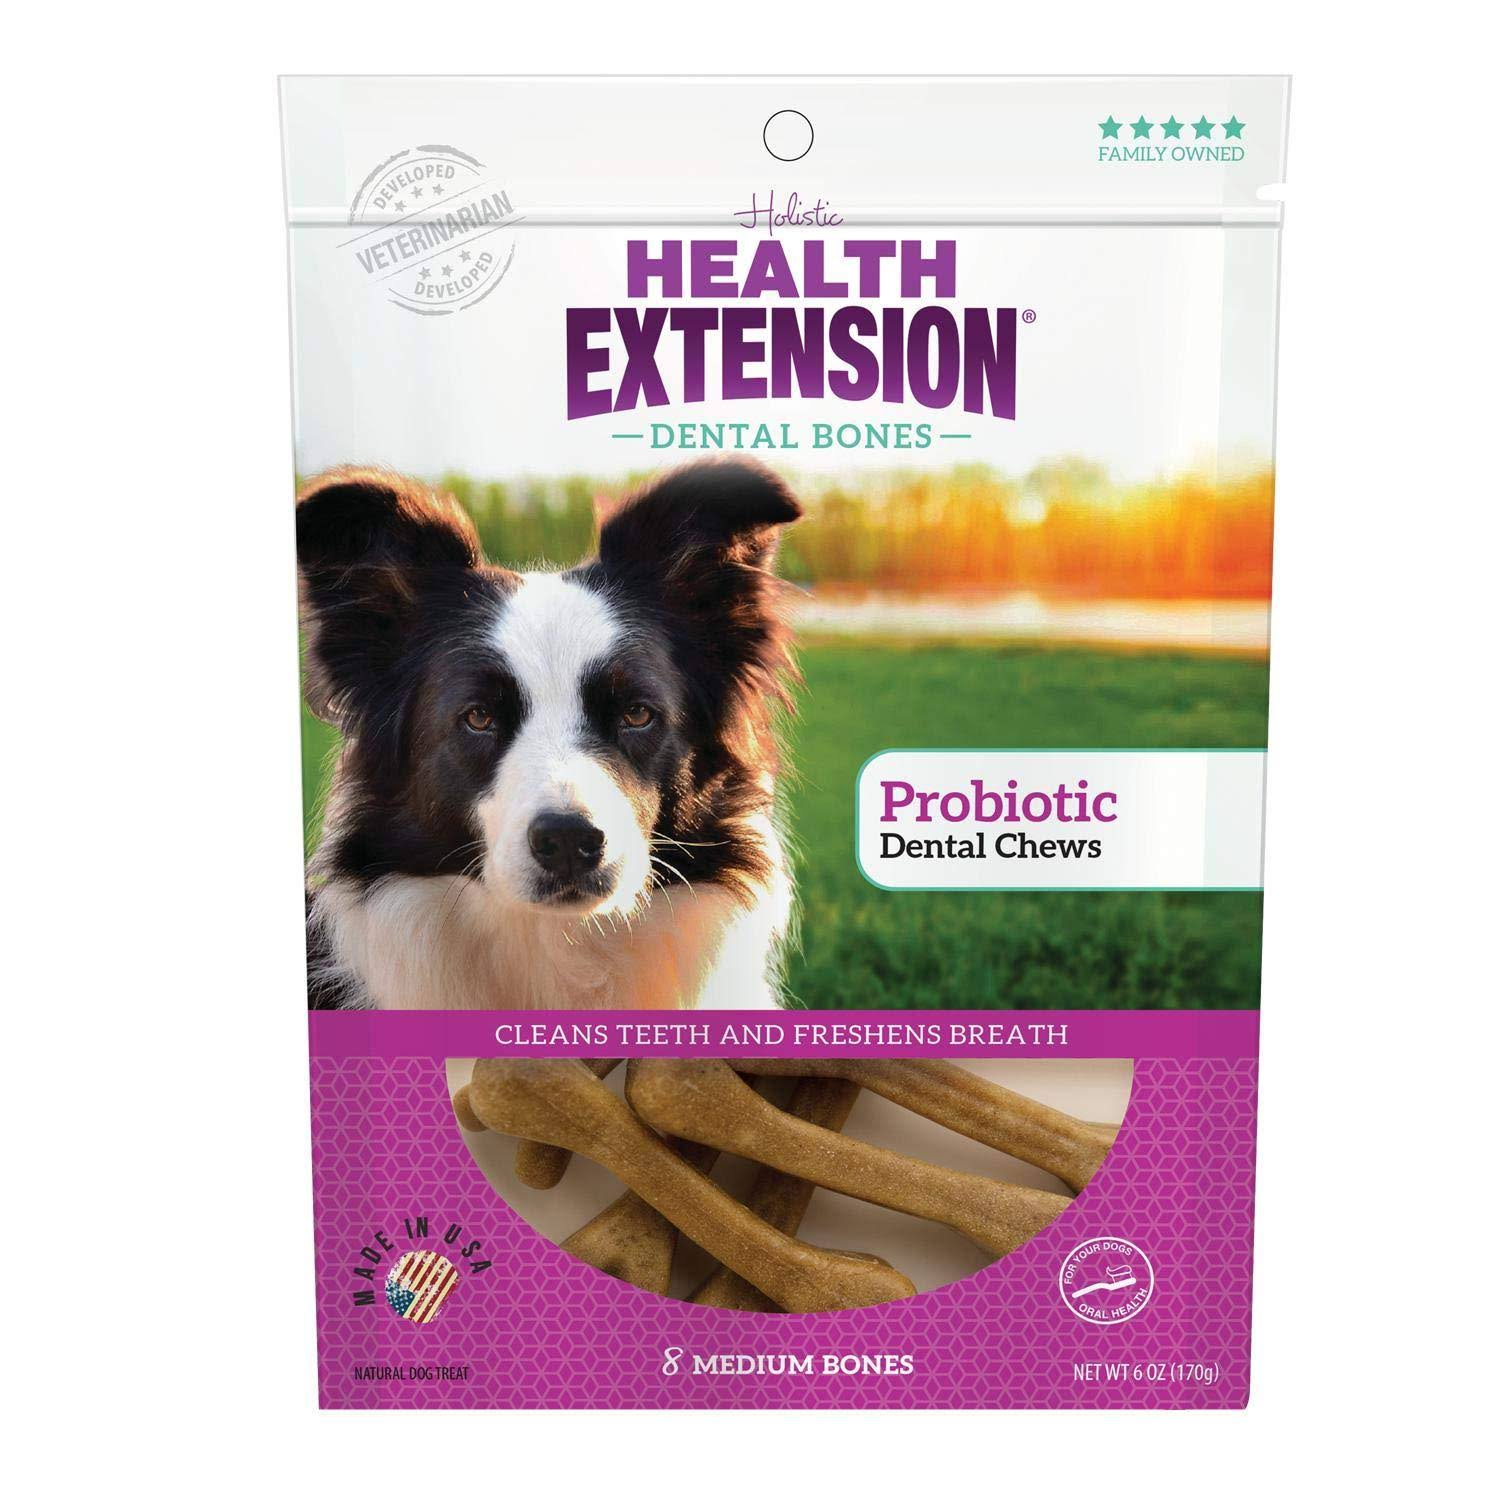 Health Extension Probiotic Dental Bones Dog Treats, Medium